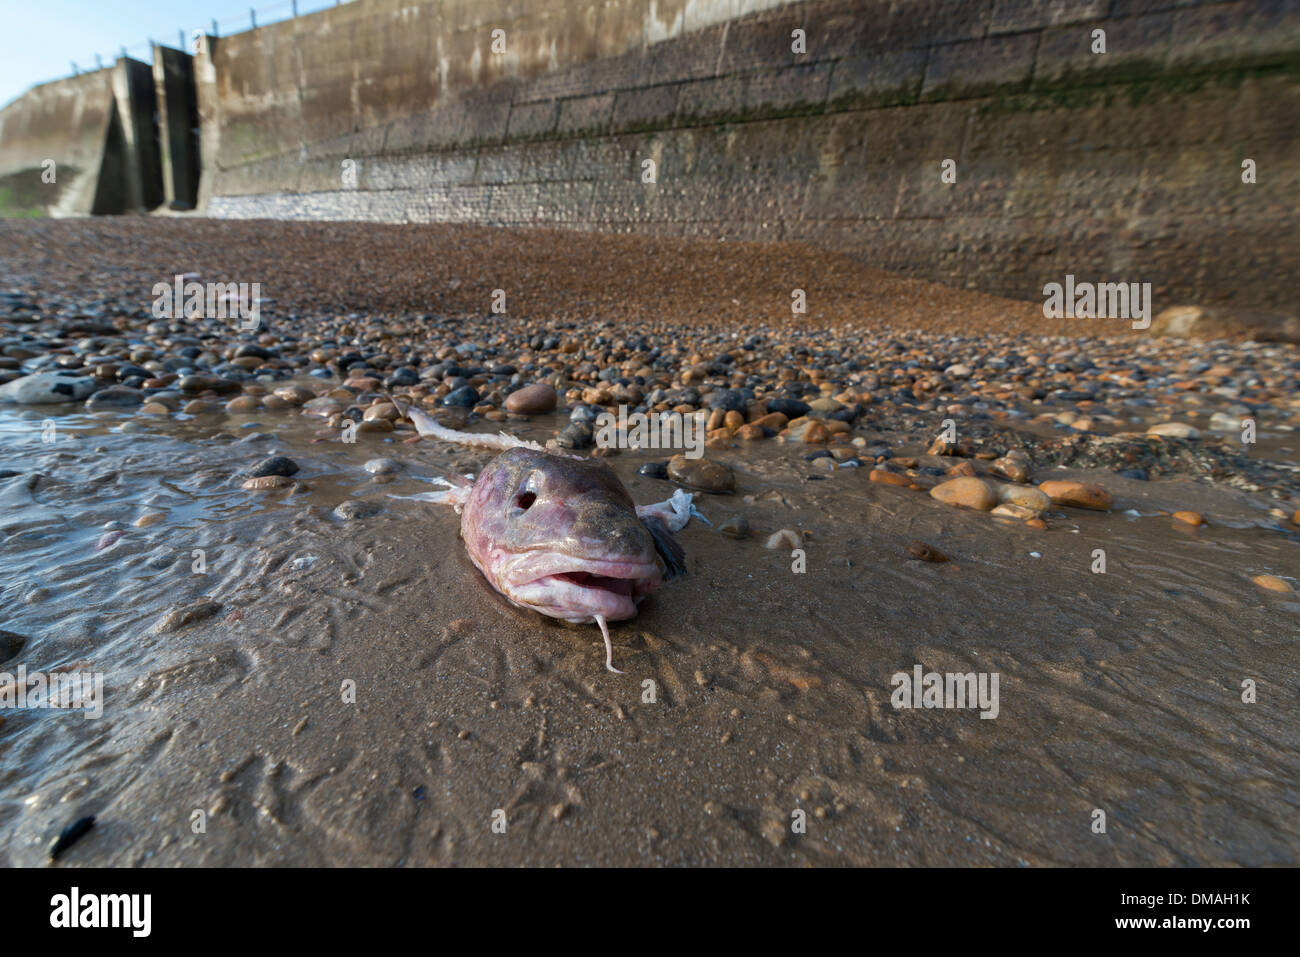 A gutted cods head washed up on the beach at Hastings, East Sussex. GB - Stock Image